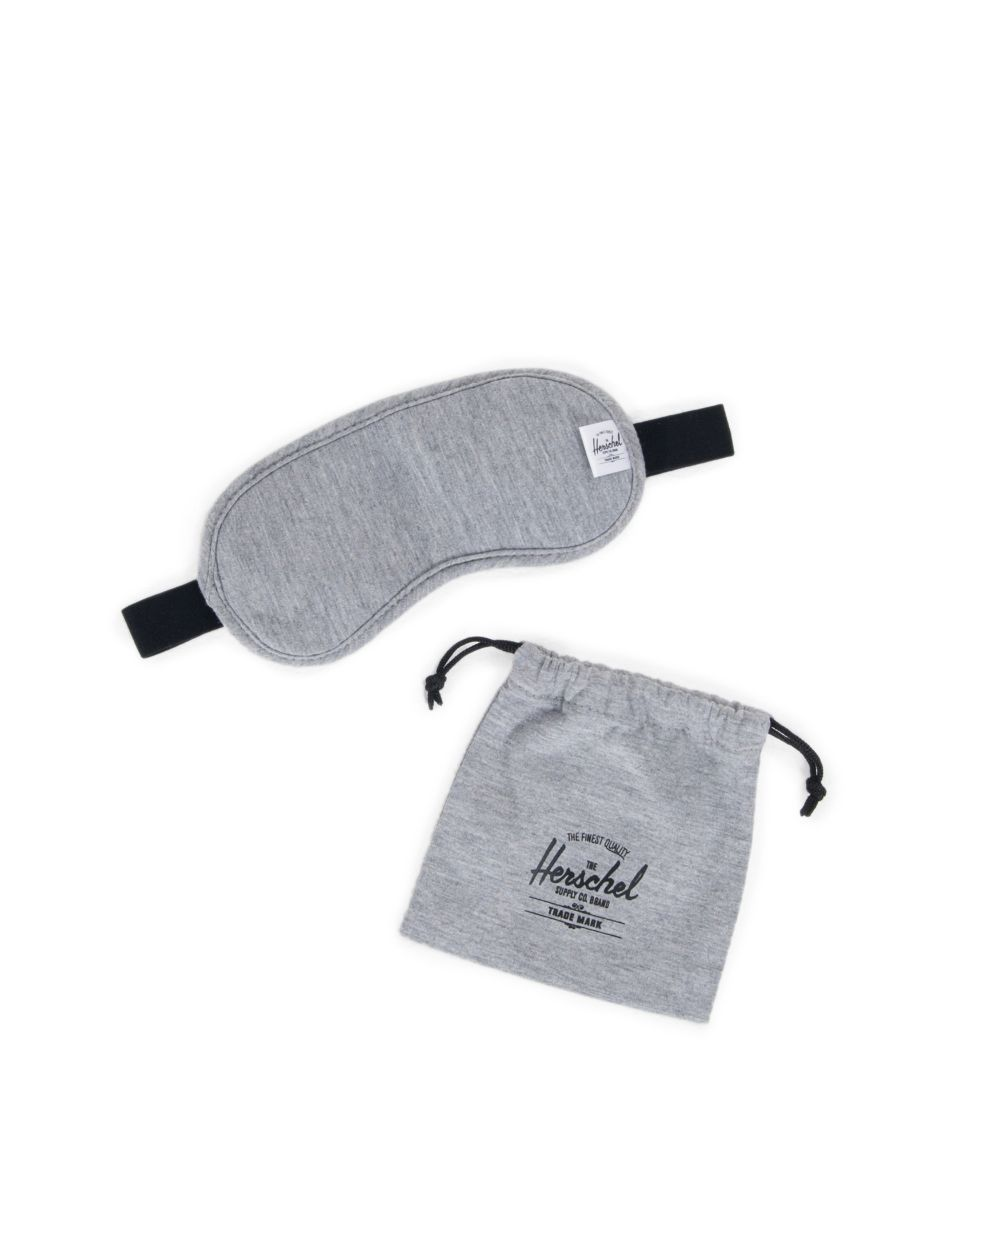 Herschel Supply Co. Eye Mask